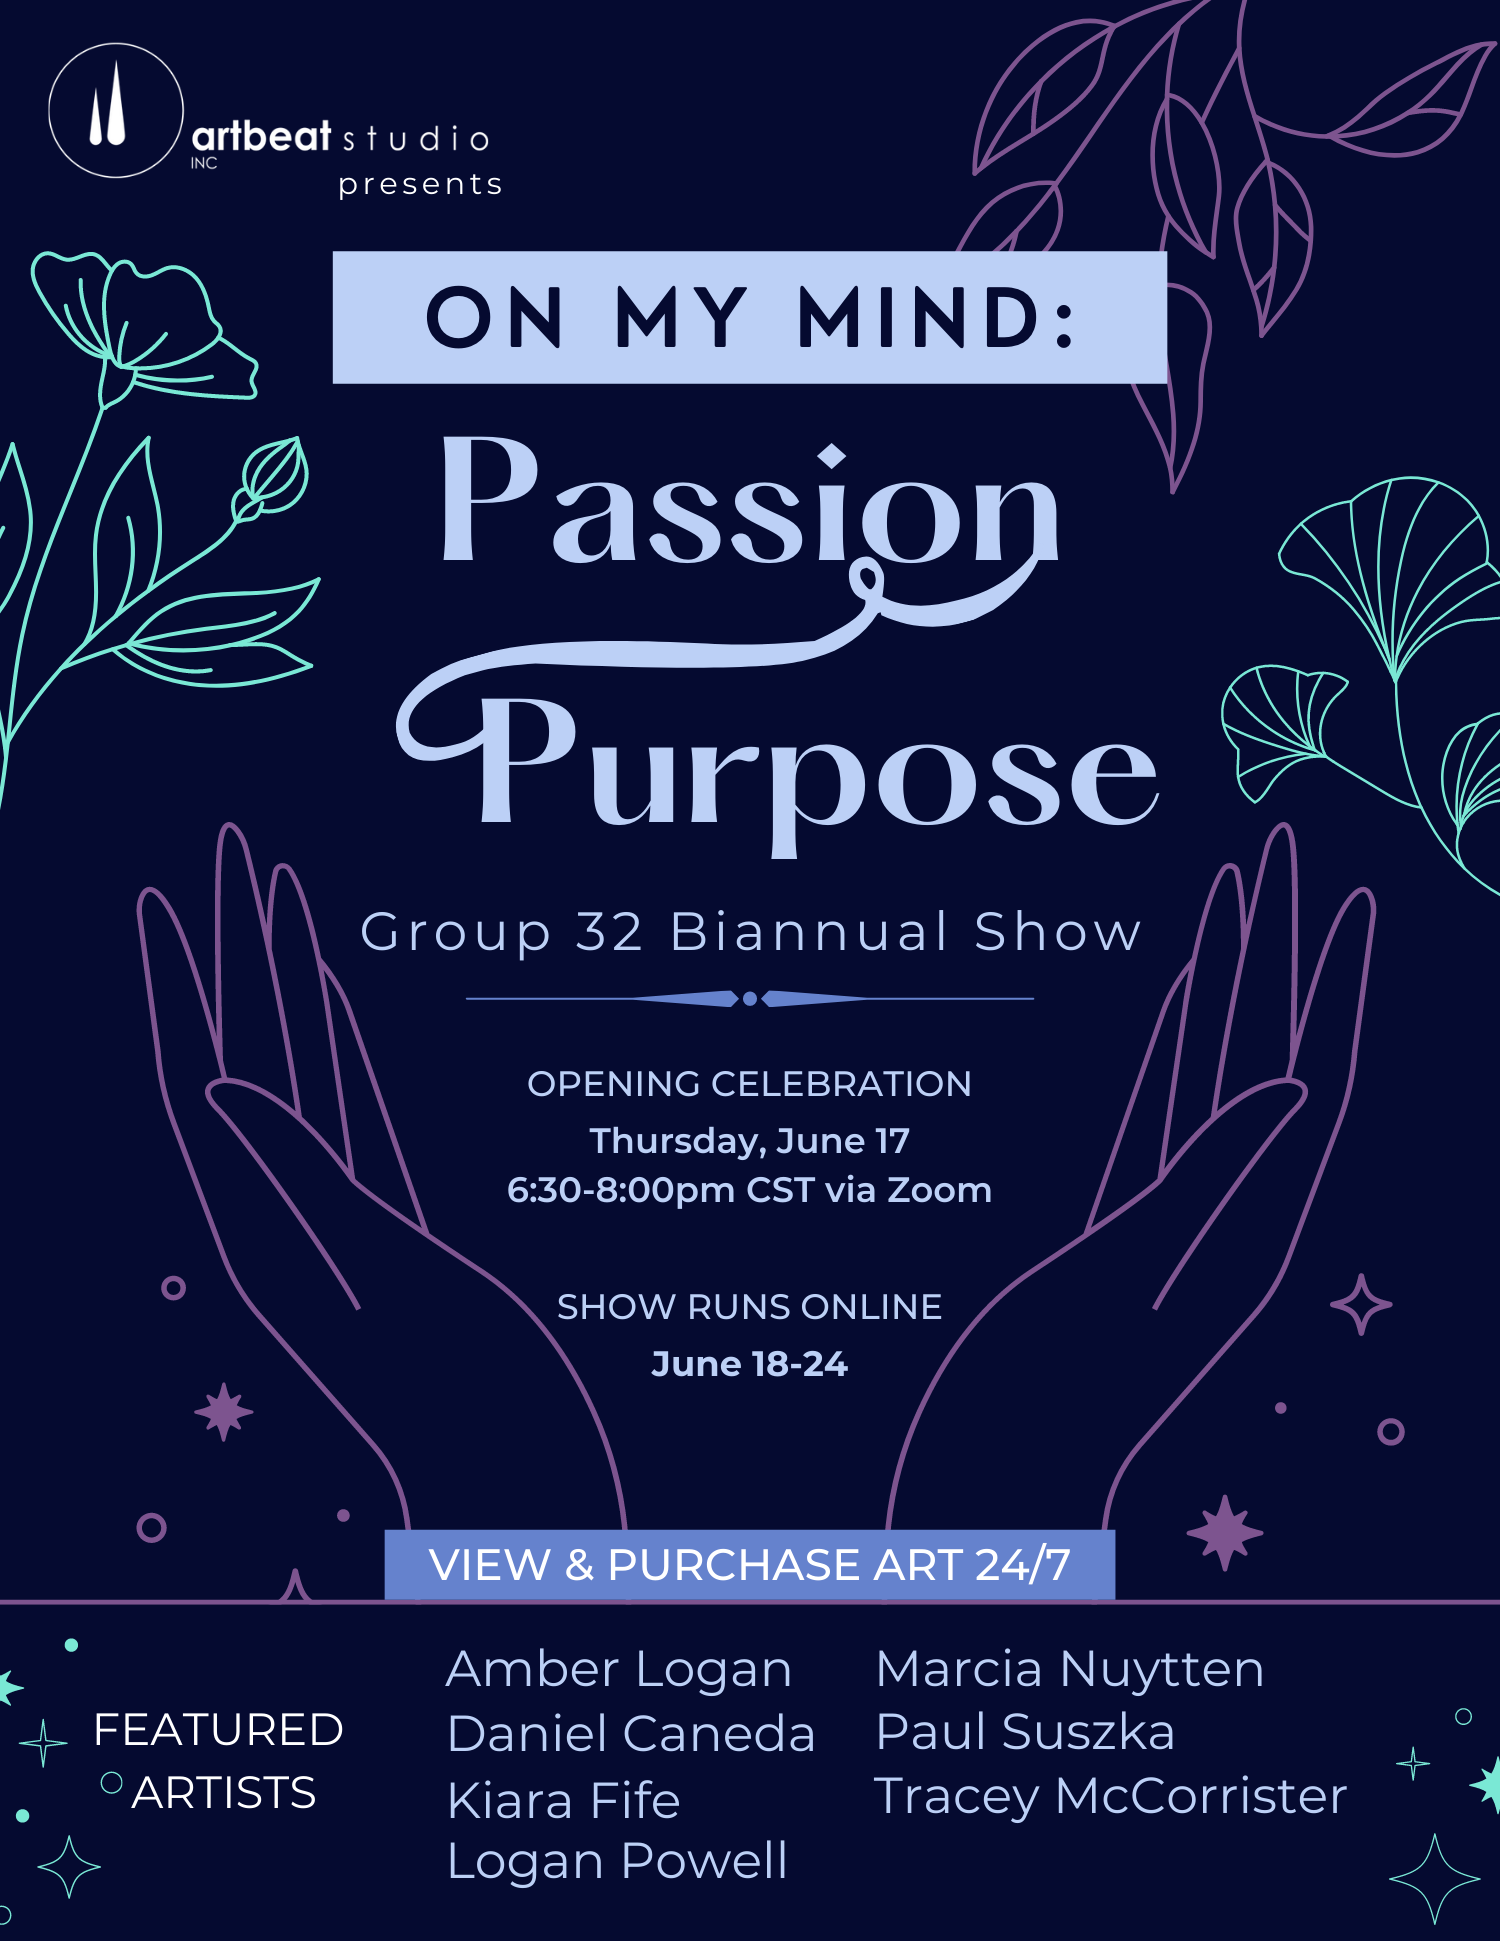 On My Mind: Passion=Purpose event poster